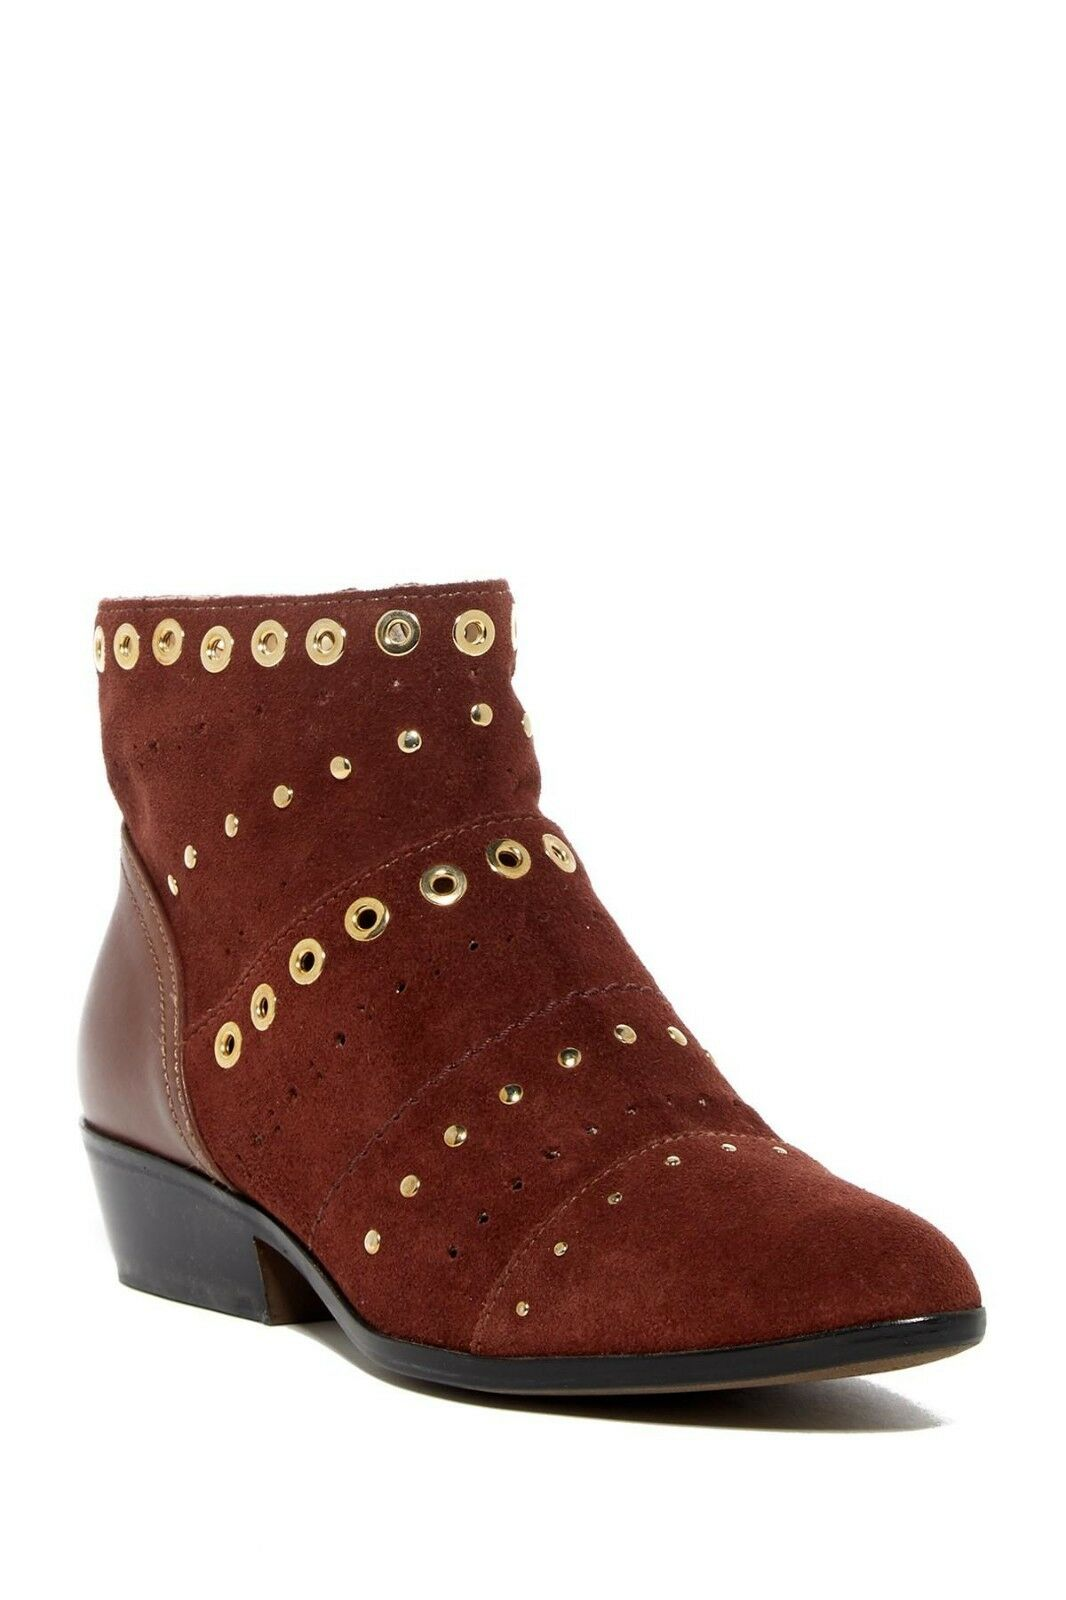 NEW GEOX Kennity Suede Ankle Boot, Wine, Studded, Women Size 37 (6.5-7 US),